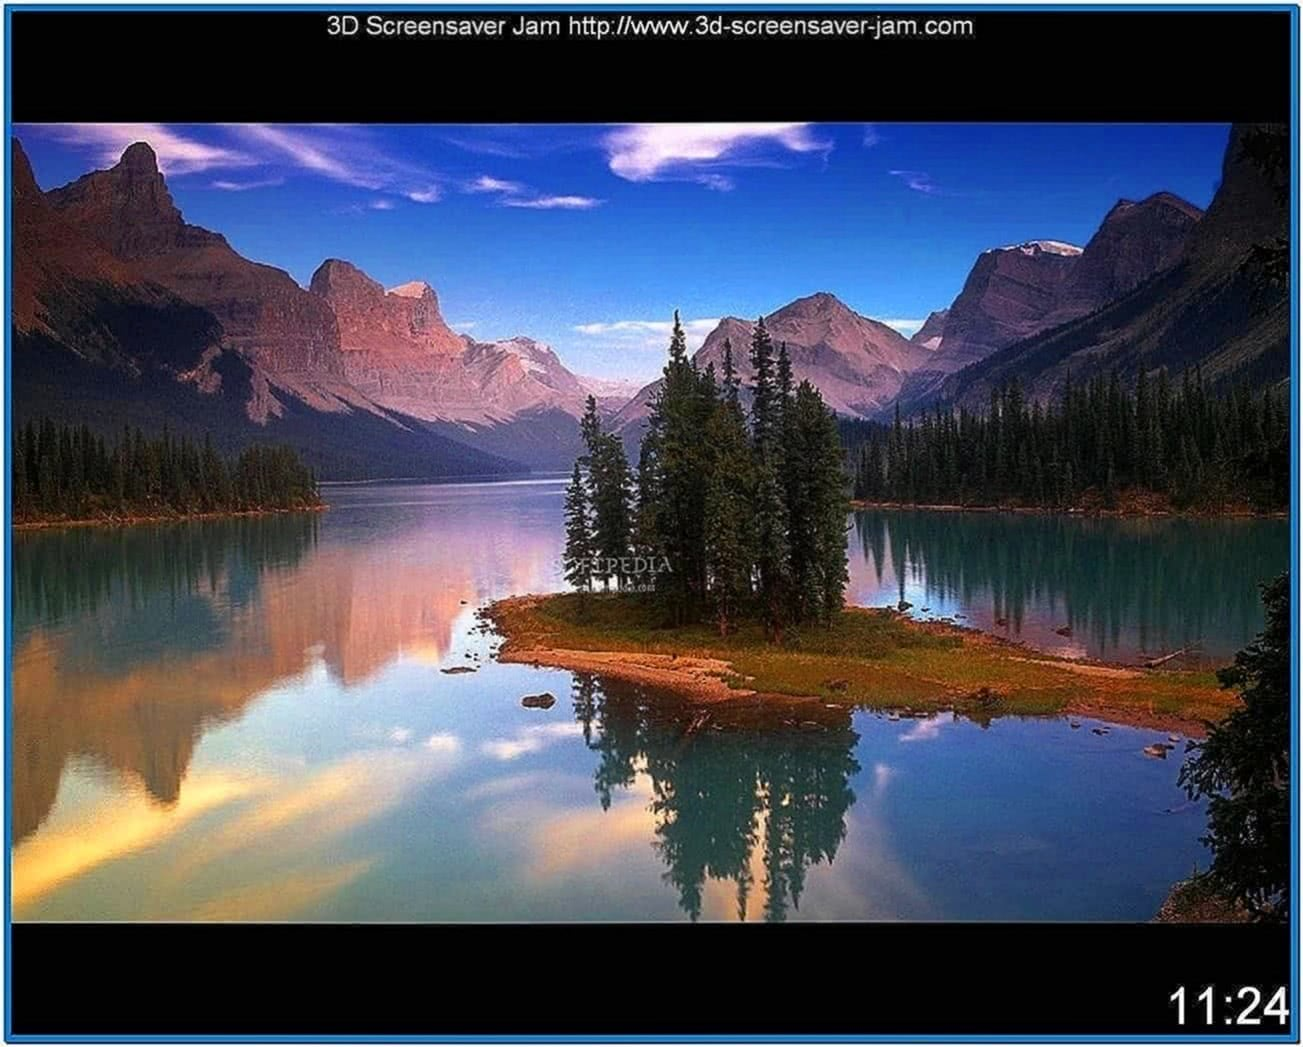 Hd free screensavers without downloading music search for Screensaver hd gratis